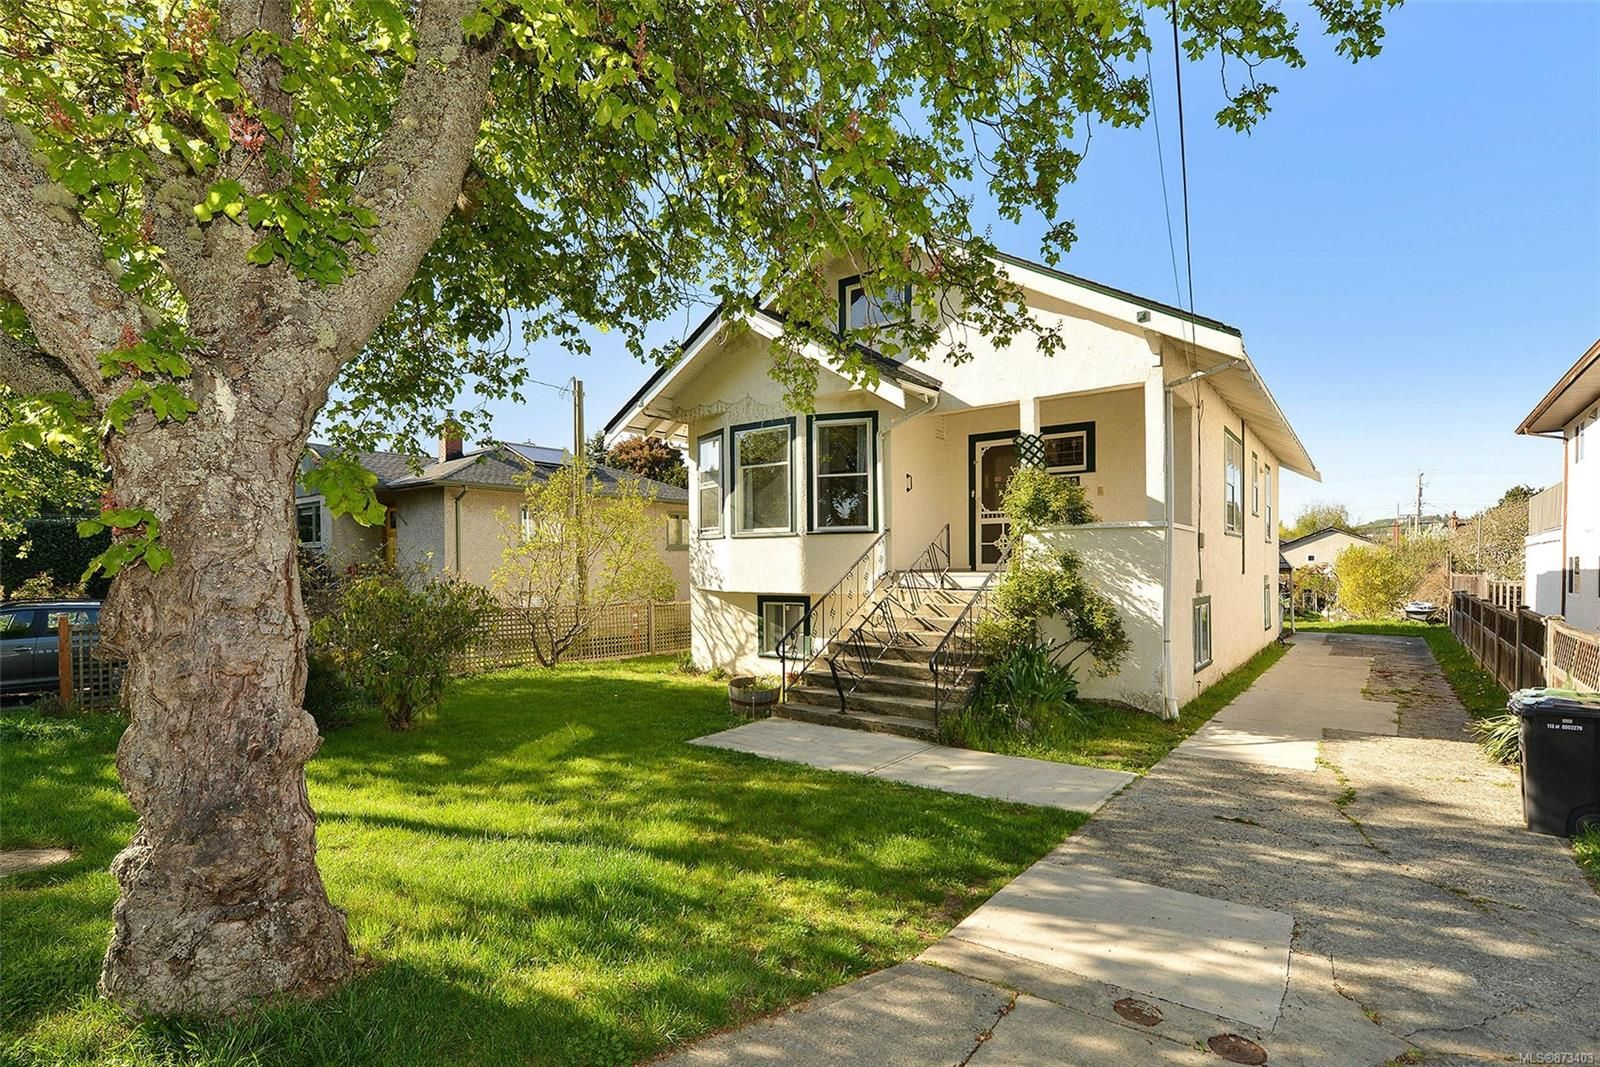 Main Photo: 1772 Carrick St in : Vi Oaklands House for sale (Victoria)  : MLS®# 873403